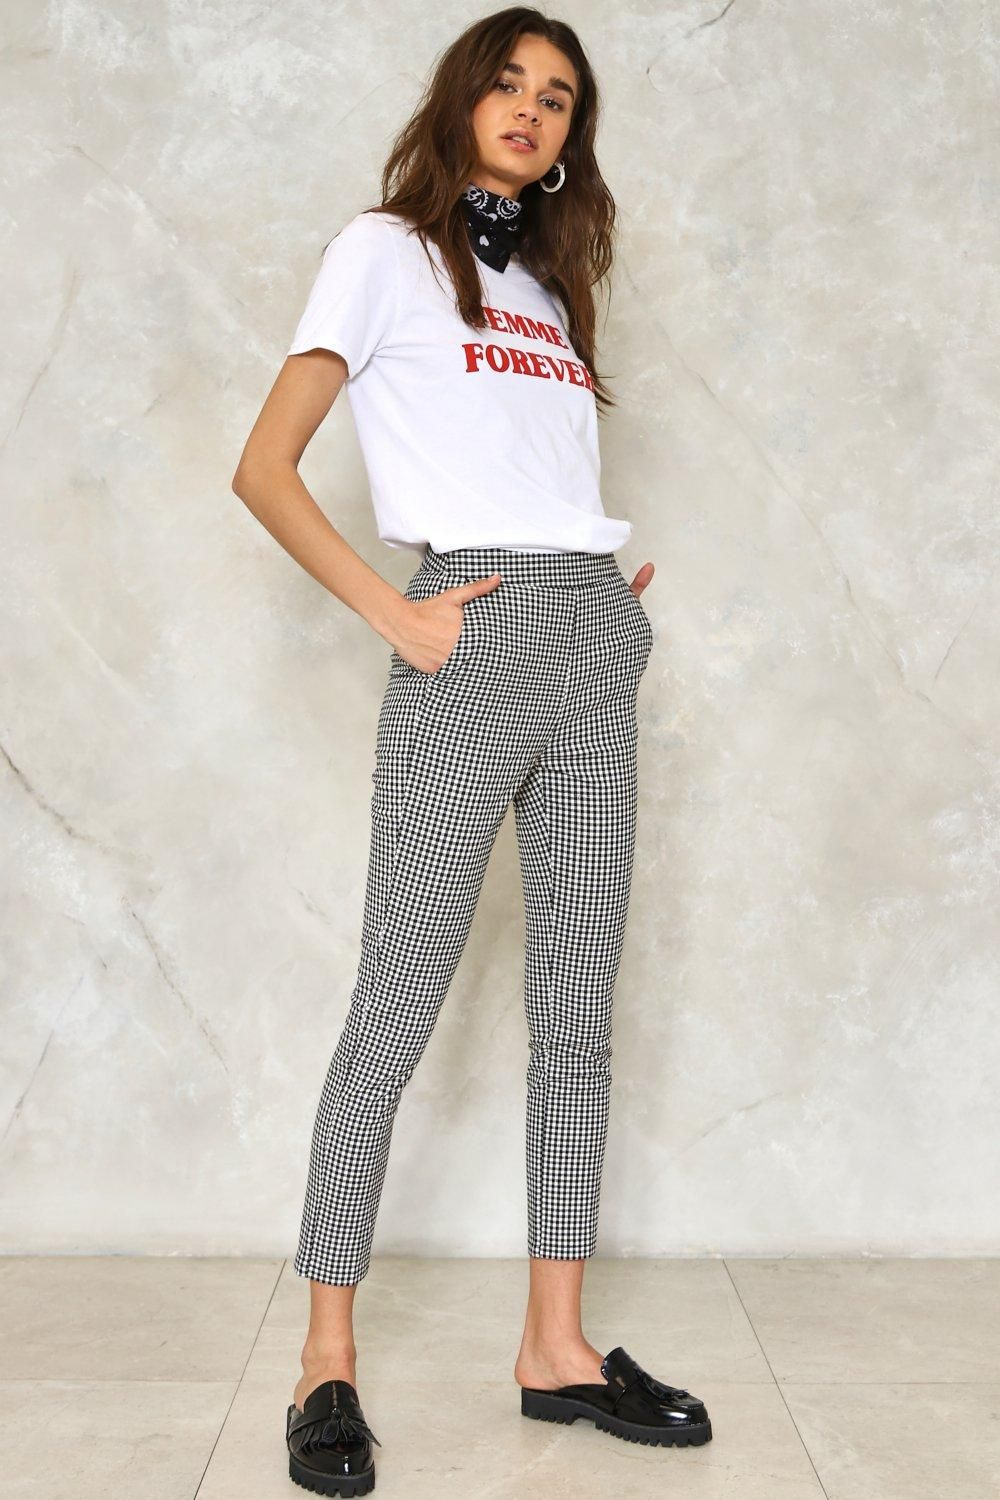 And square. The Make It Fair Pants come in gingham and feature a ... 062fabb7b2d41